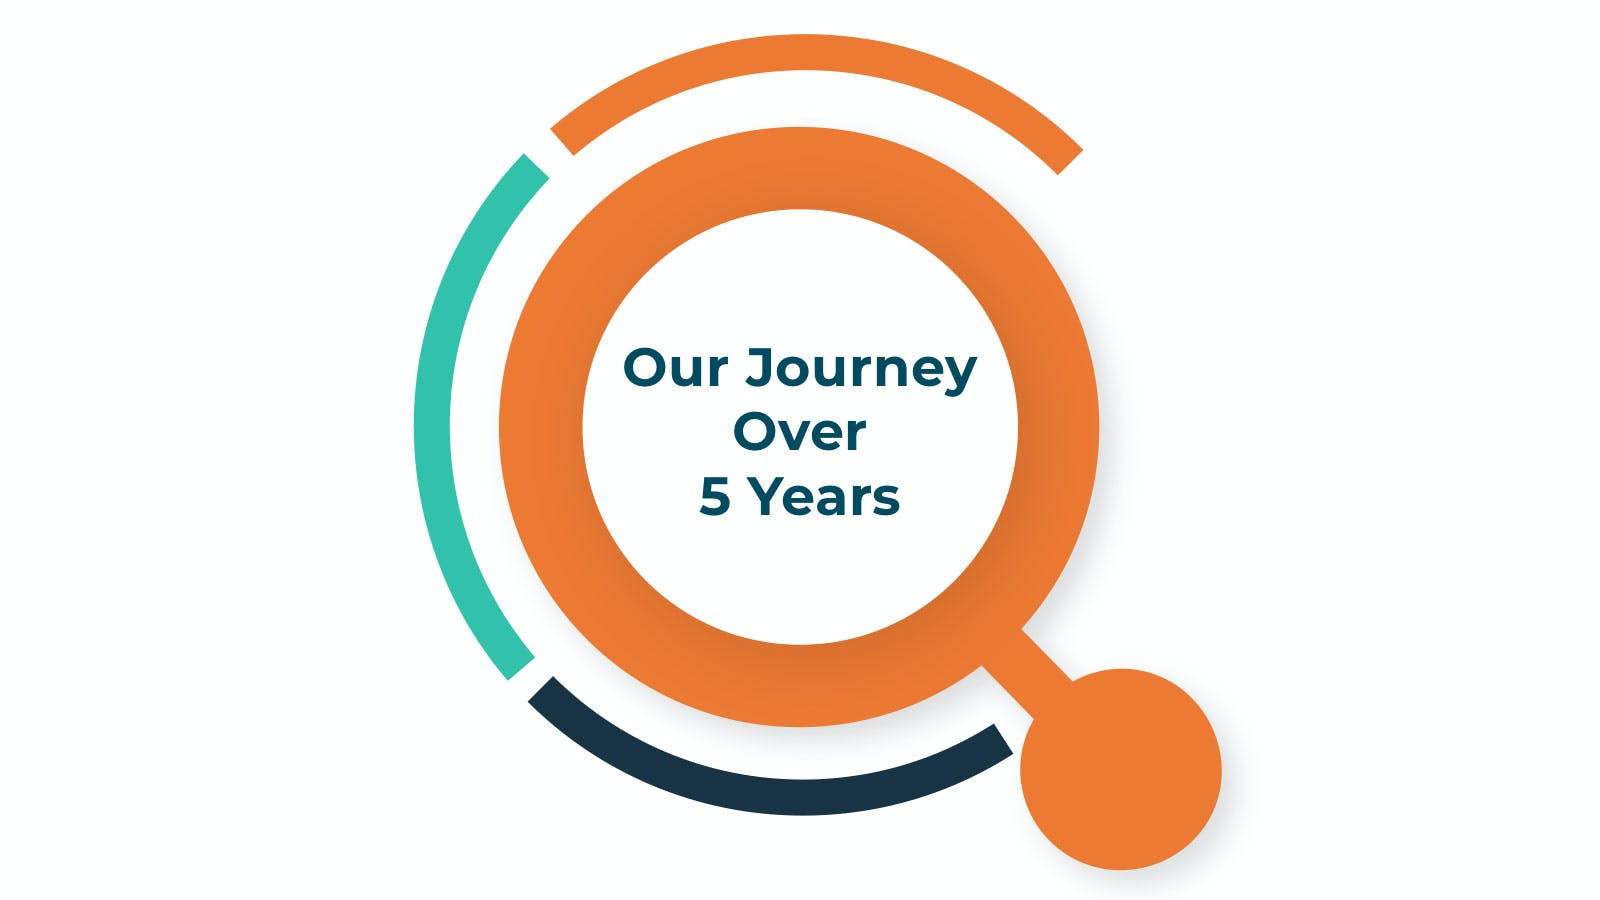 Video: Our Journey over 5 Years